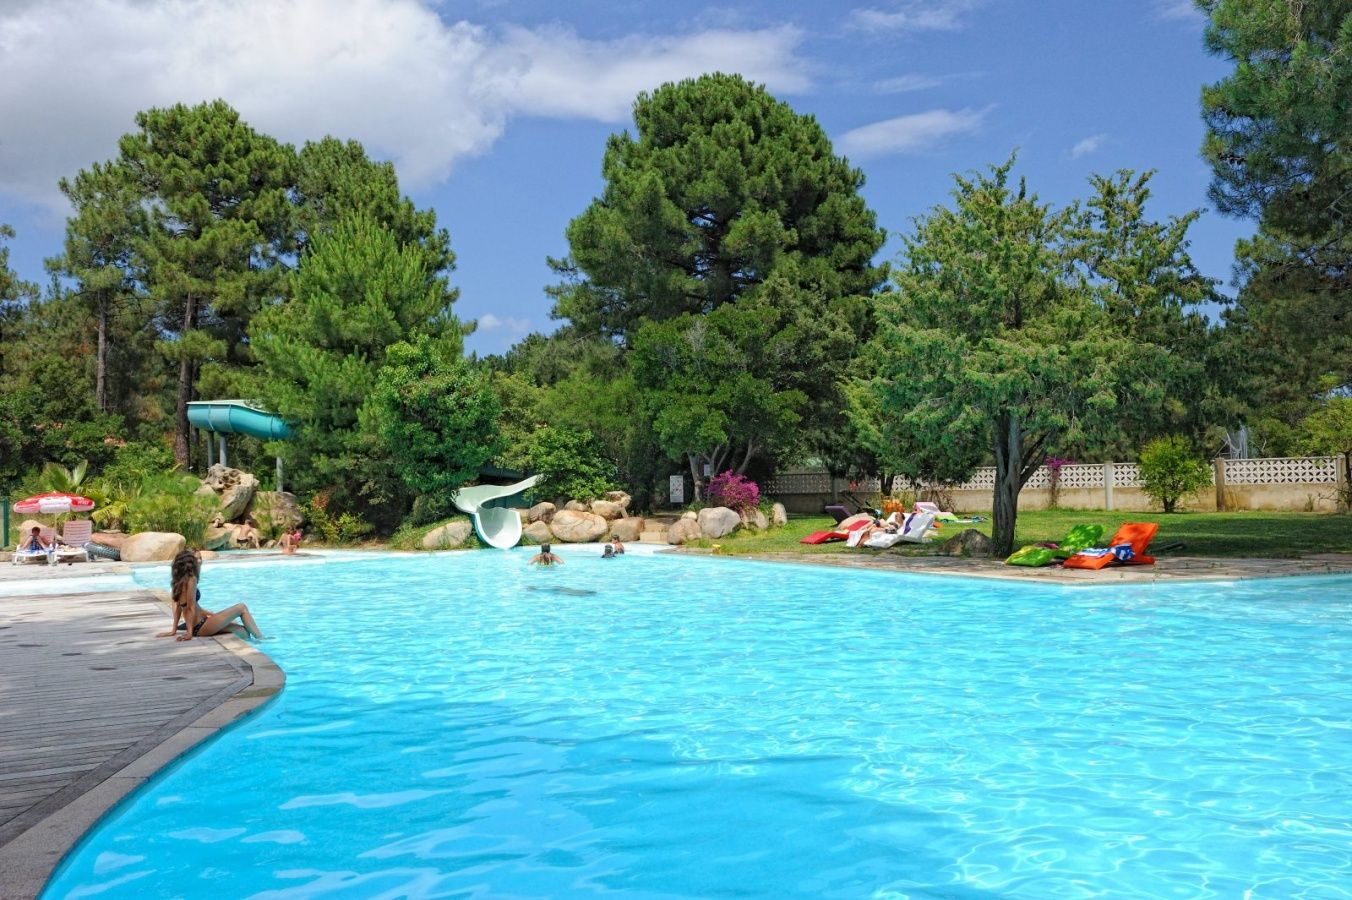 Camping corse france